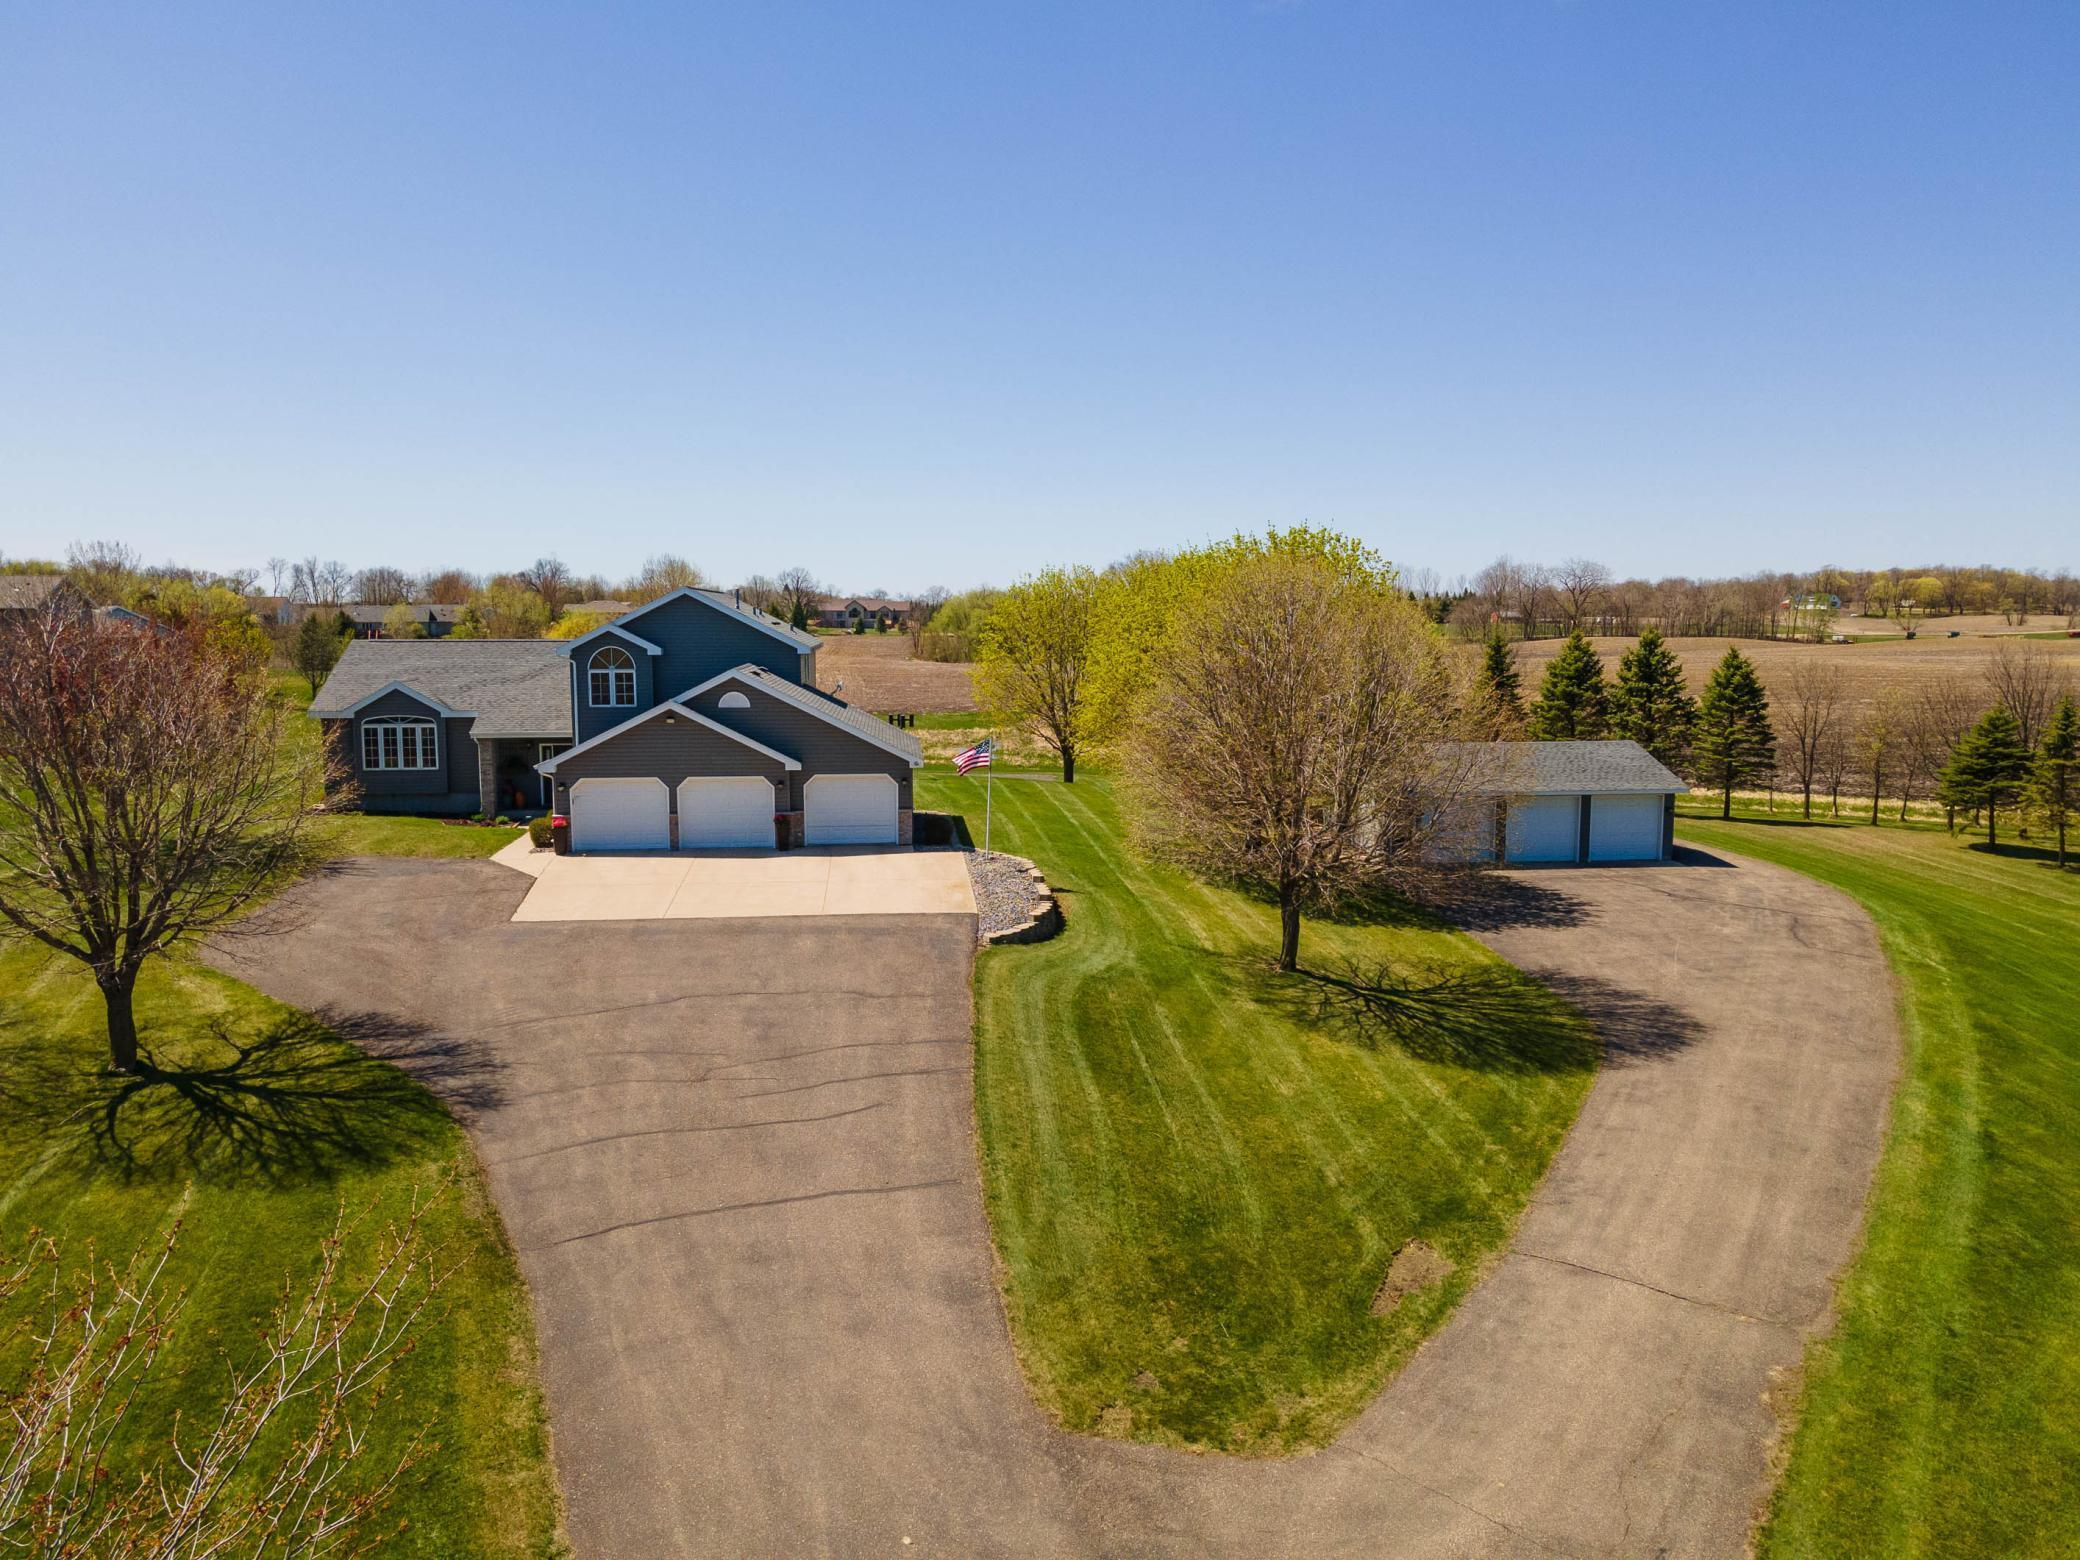 Absolutely gorgeous multi level home on 10 acres has everything you could want and more.  Beautiful views, in the country feel, spacious living and 6 garage stalls are some of the things you will appreciate about this home.  Great layout featuring a huge master suite with two additional bedrooms upstairs.  On the main floor you will find a layout perfect for entertaining - large kitchen, living room and family room with gas fireplace.  Lower level features additional family room and space that could be a 4th bedroom.  Attached, heated and insulated triple stall garage as well as an additional triple stall insulated garage has plenty of room to store the toys and do the projects.  Located across the street from Lake Latoka, backyard features its own basketball court and overlooks its own 10 acres of rolling fields.  Check this one out today!